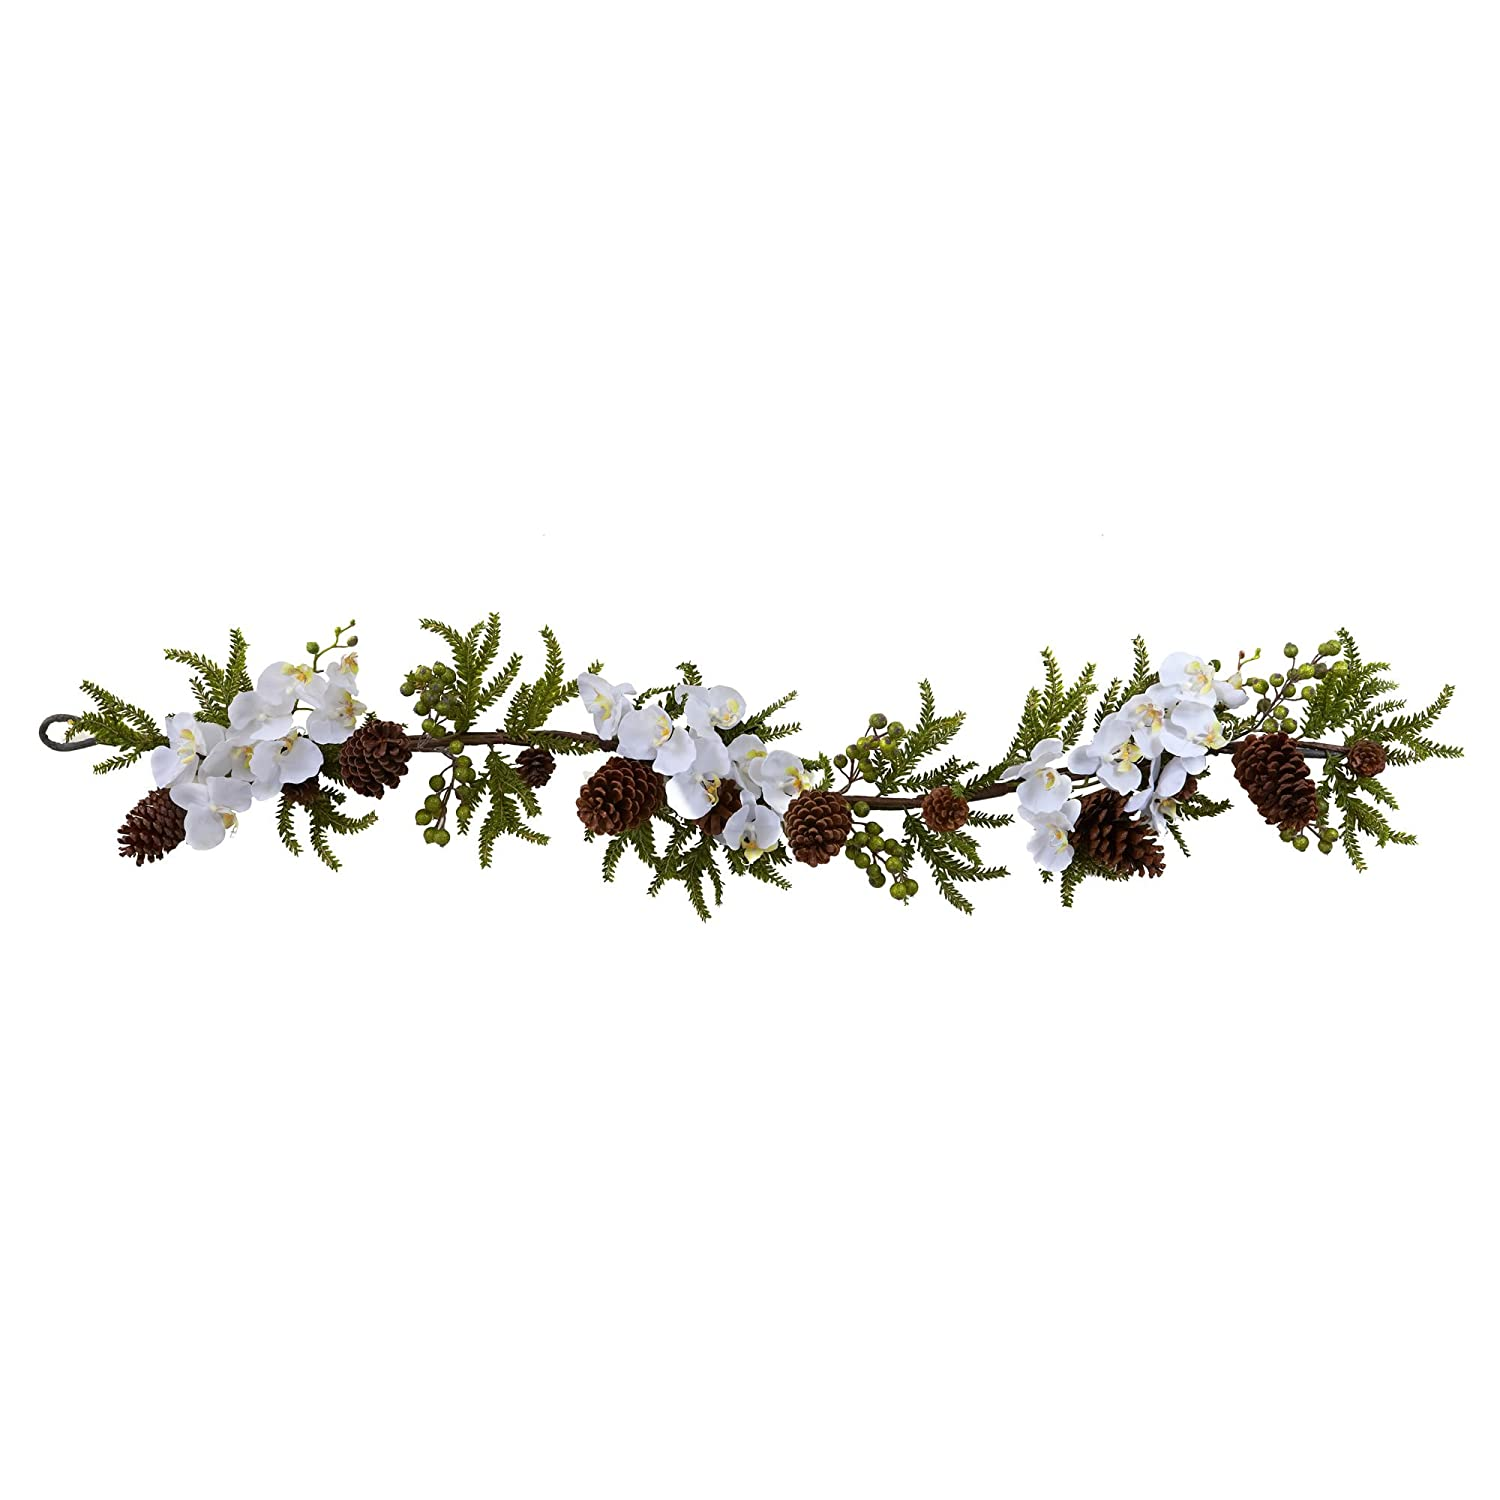 Nearly Natural 4947 Phalaenopsis Orchid and Pine Garland, 60-Inch, Green/White